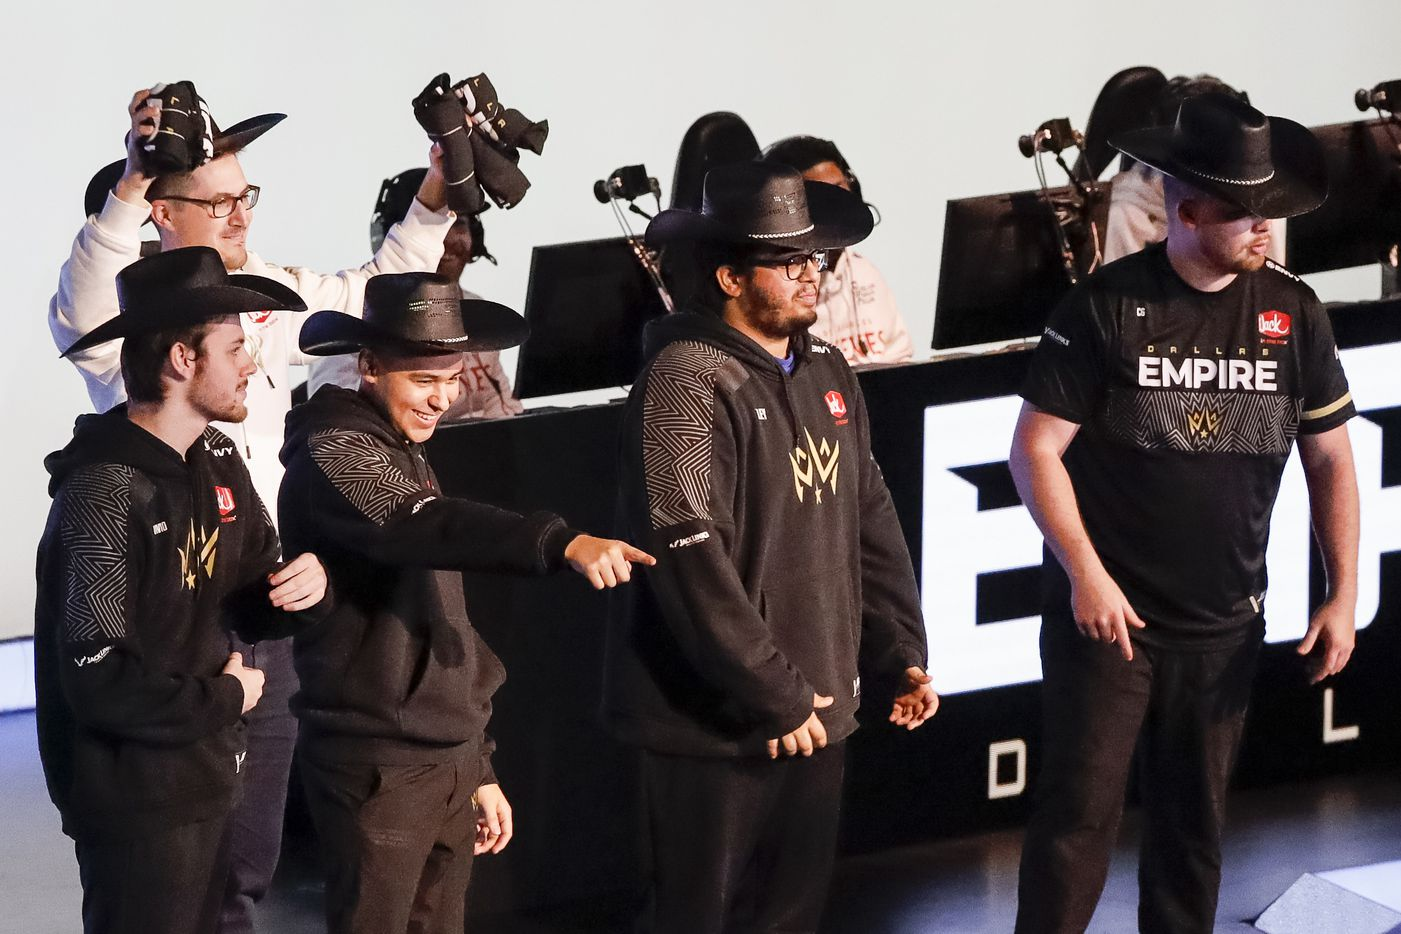 The Dallas Empire team is introduced before a match against the Los Angeles Thieves during the Call of Duty League Major V tournament at Esports Stadium Arlington on Saturday, July 31, 2021, in Arlington. (Elias Valverde II/The Dallas Morning News)